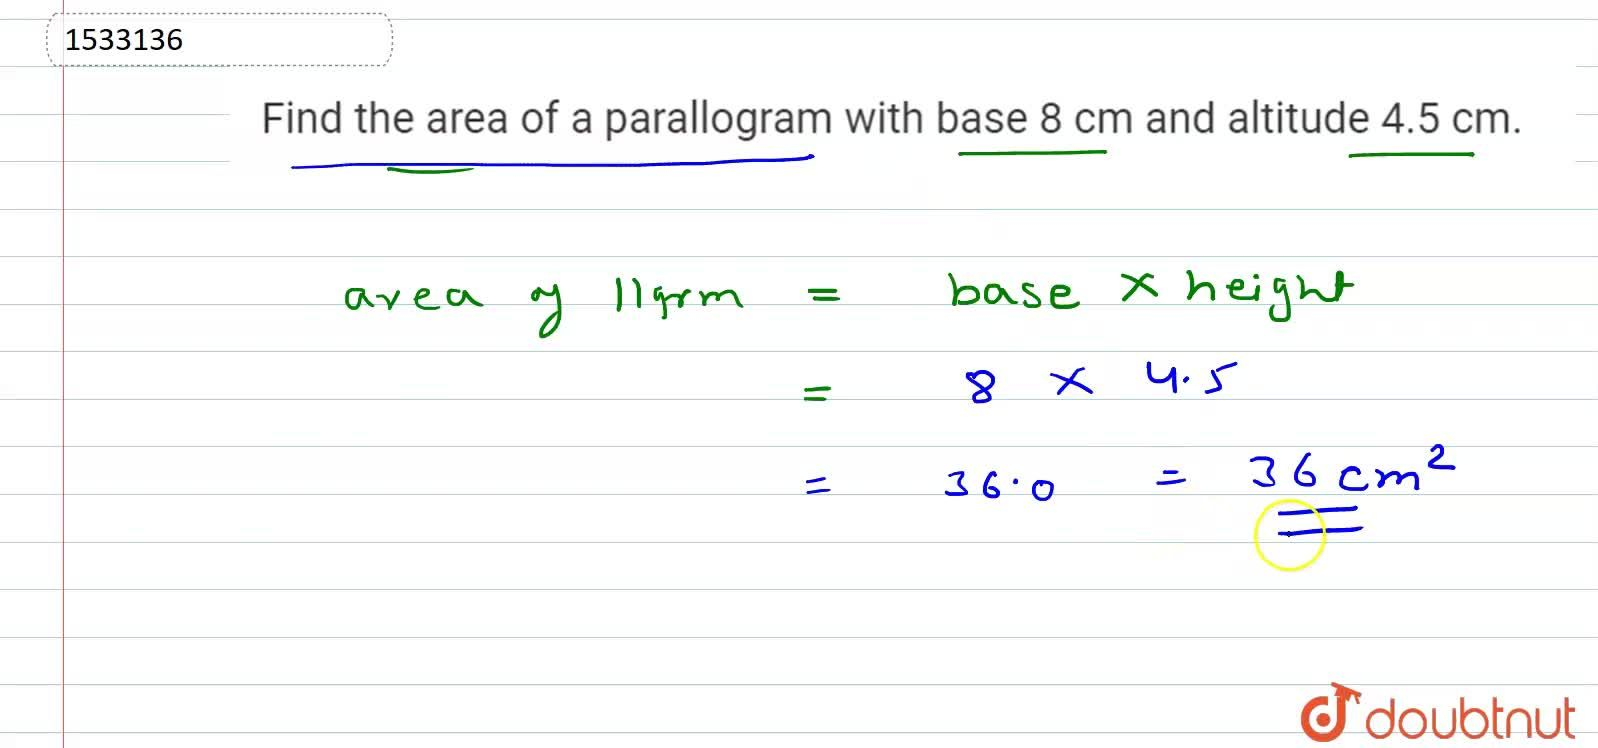 Find the area of a parallelogram whose base is 8cm and altitude is 4.5cm